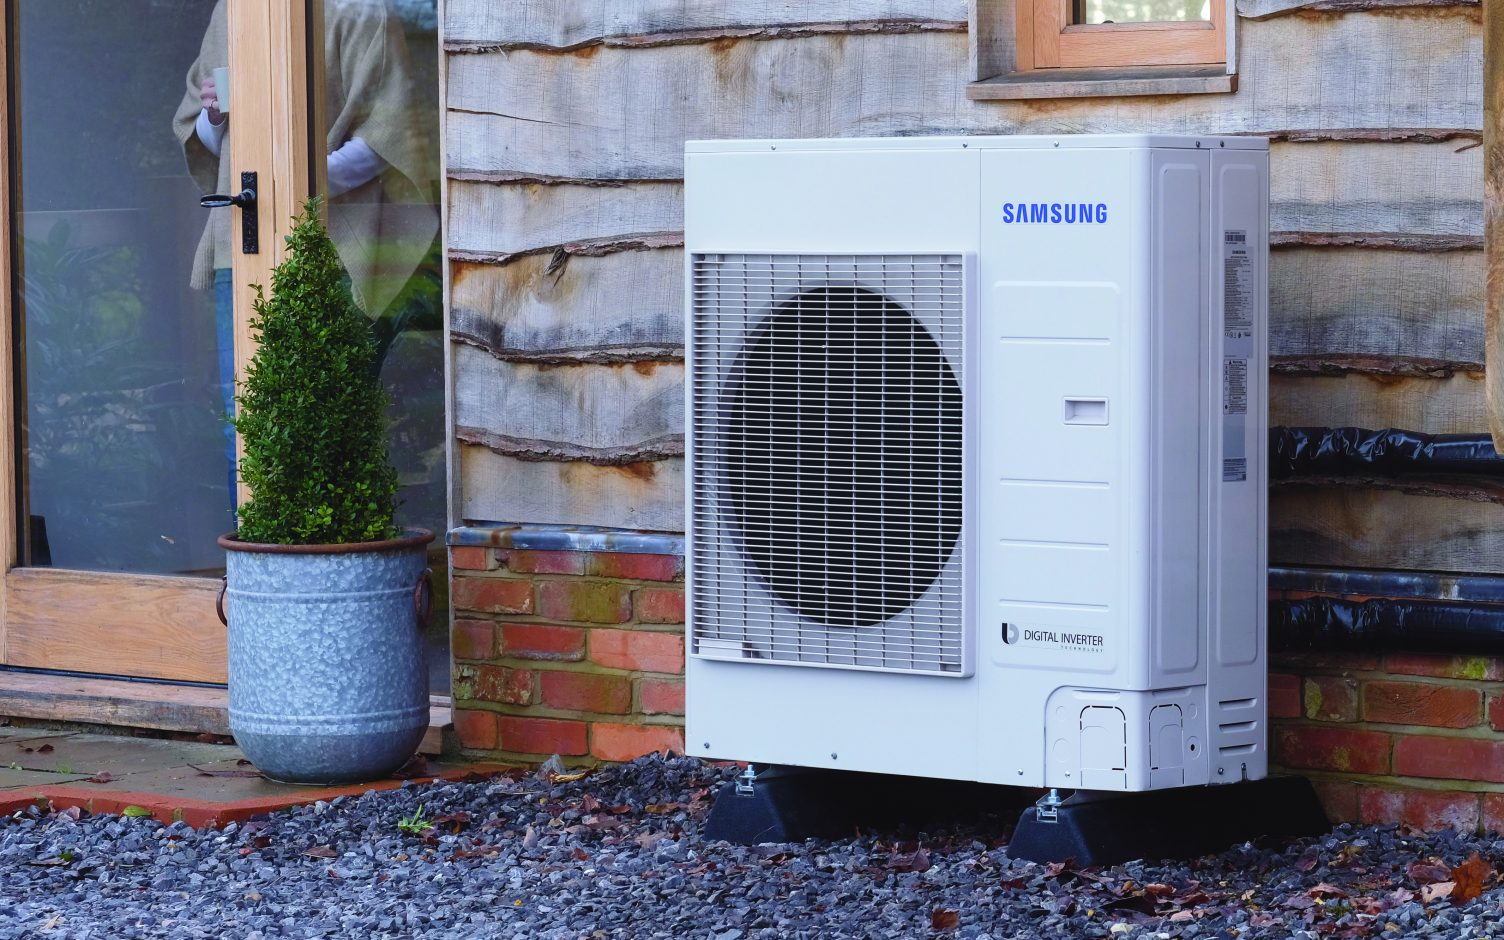 The UK is targeting 600,000 heat pump installations a year by 2027. Image: Igloo Energy.